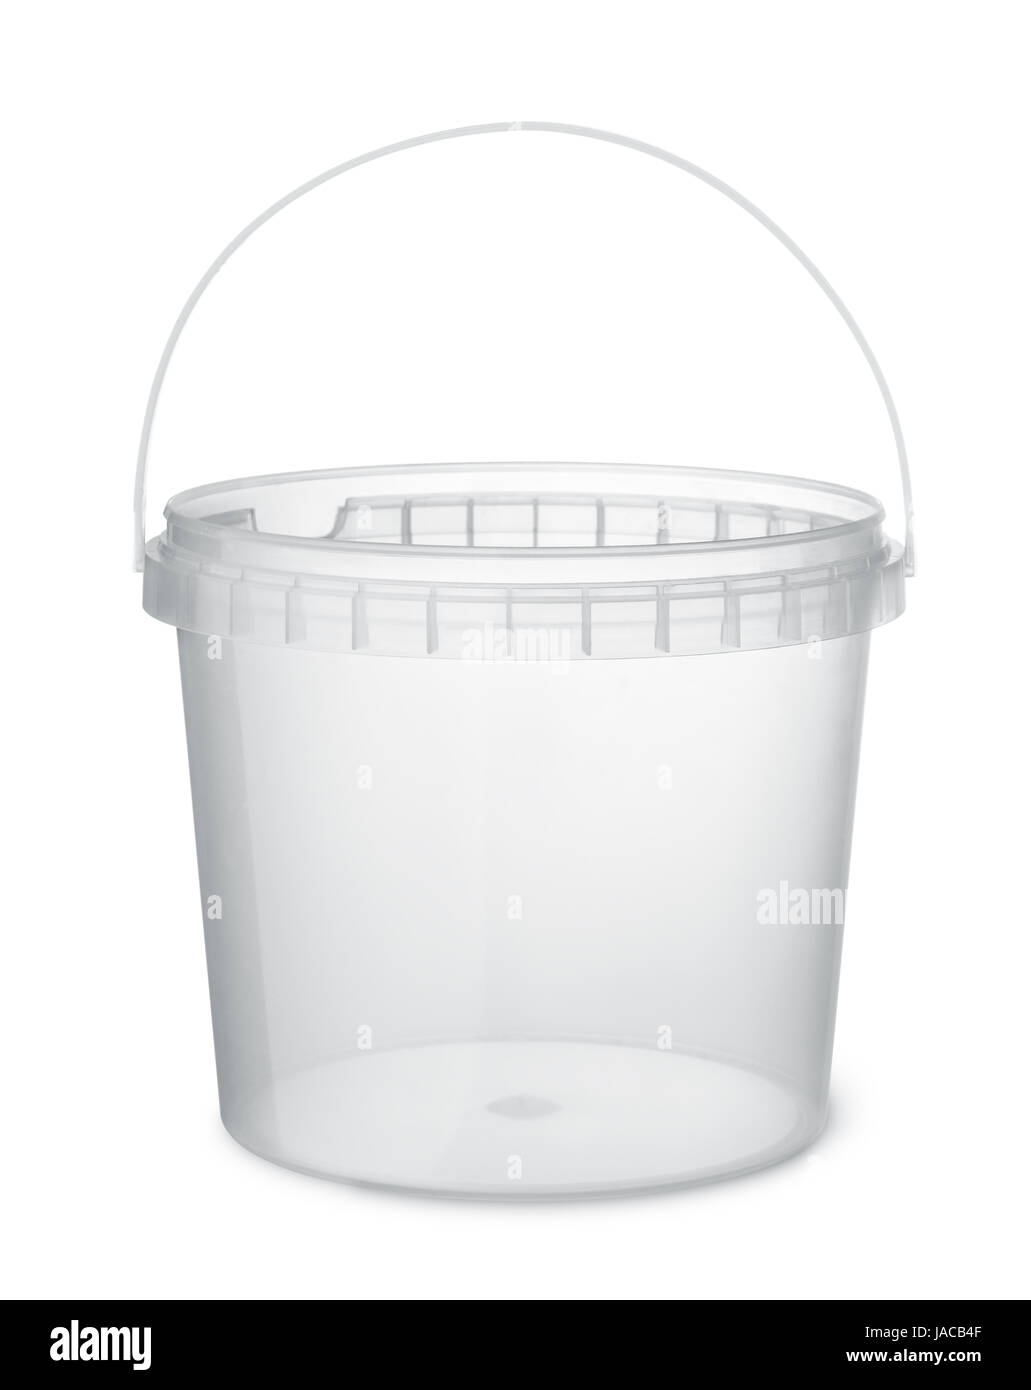 Clear plastic food bucket isolated on white - Stock Image